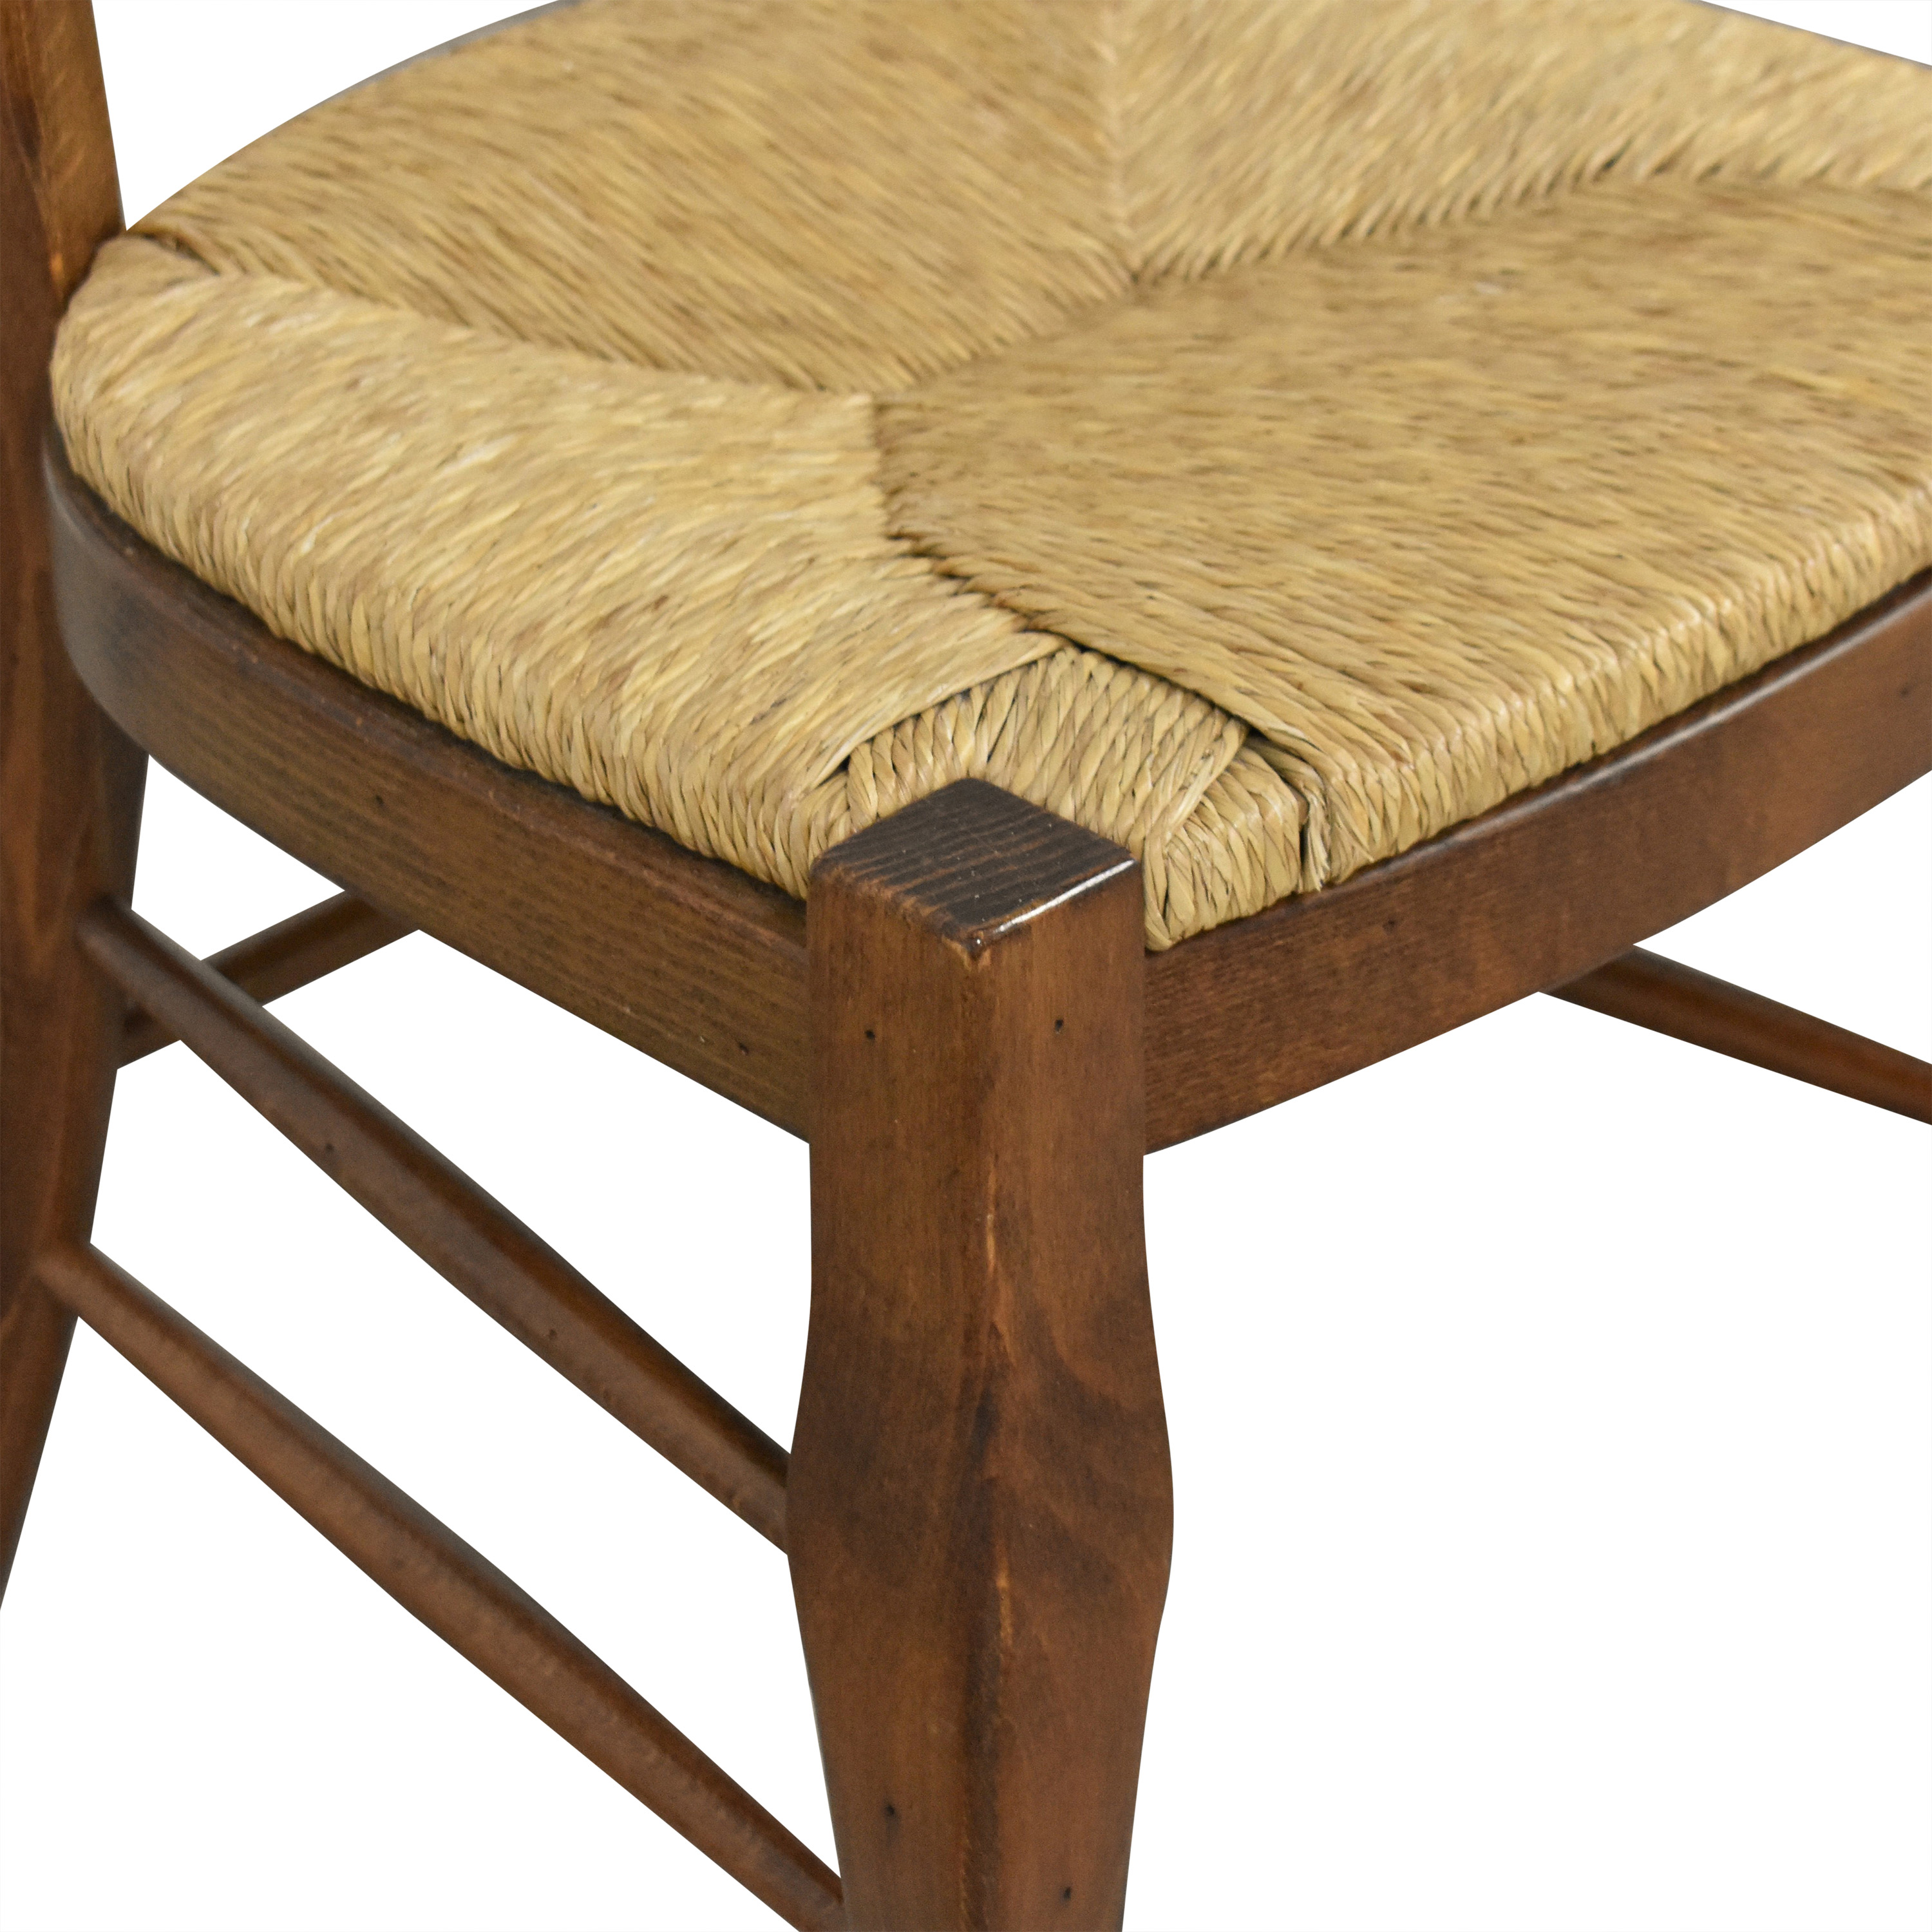 buy Pottery Barn Woven Seat Dining Chairs Pottery Barn Chairs